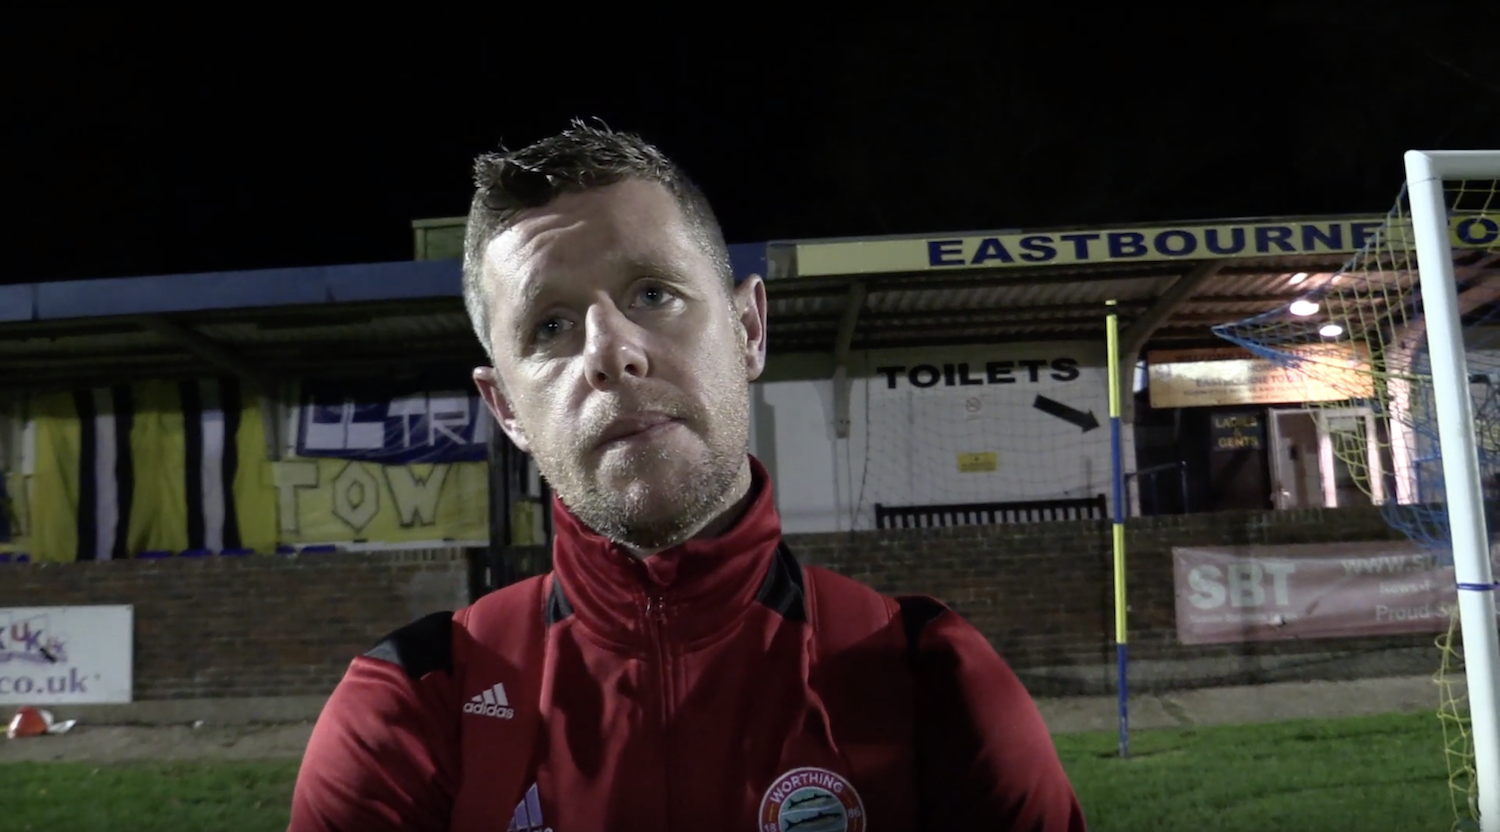 Read the full article - Post Match Interview: Eastbourne Town [A] – Cup